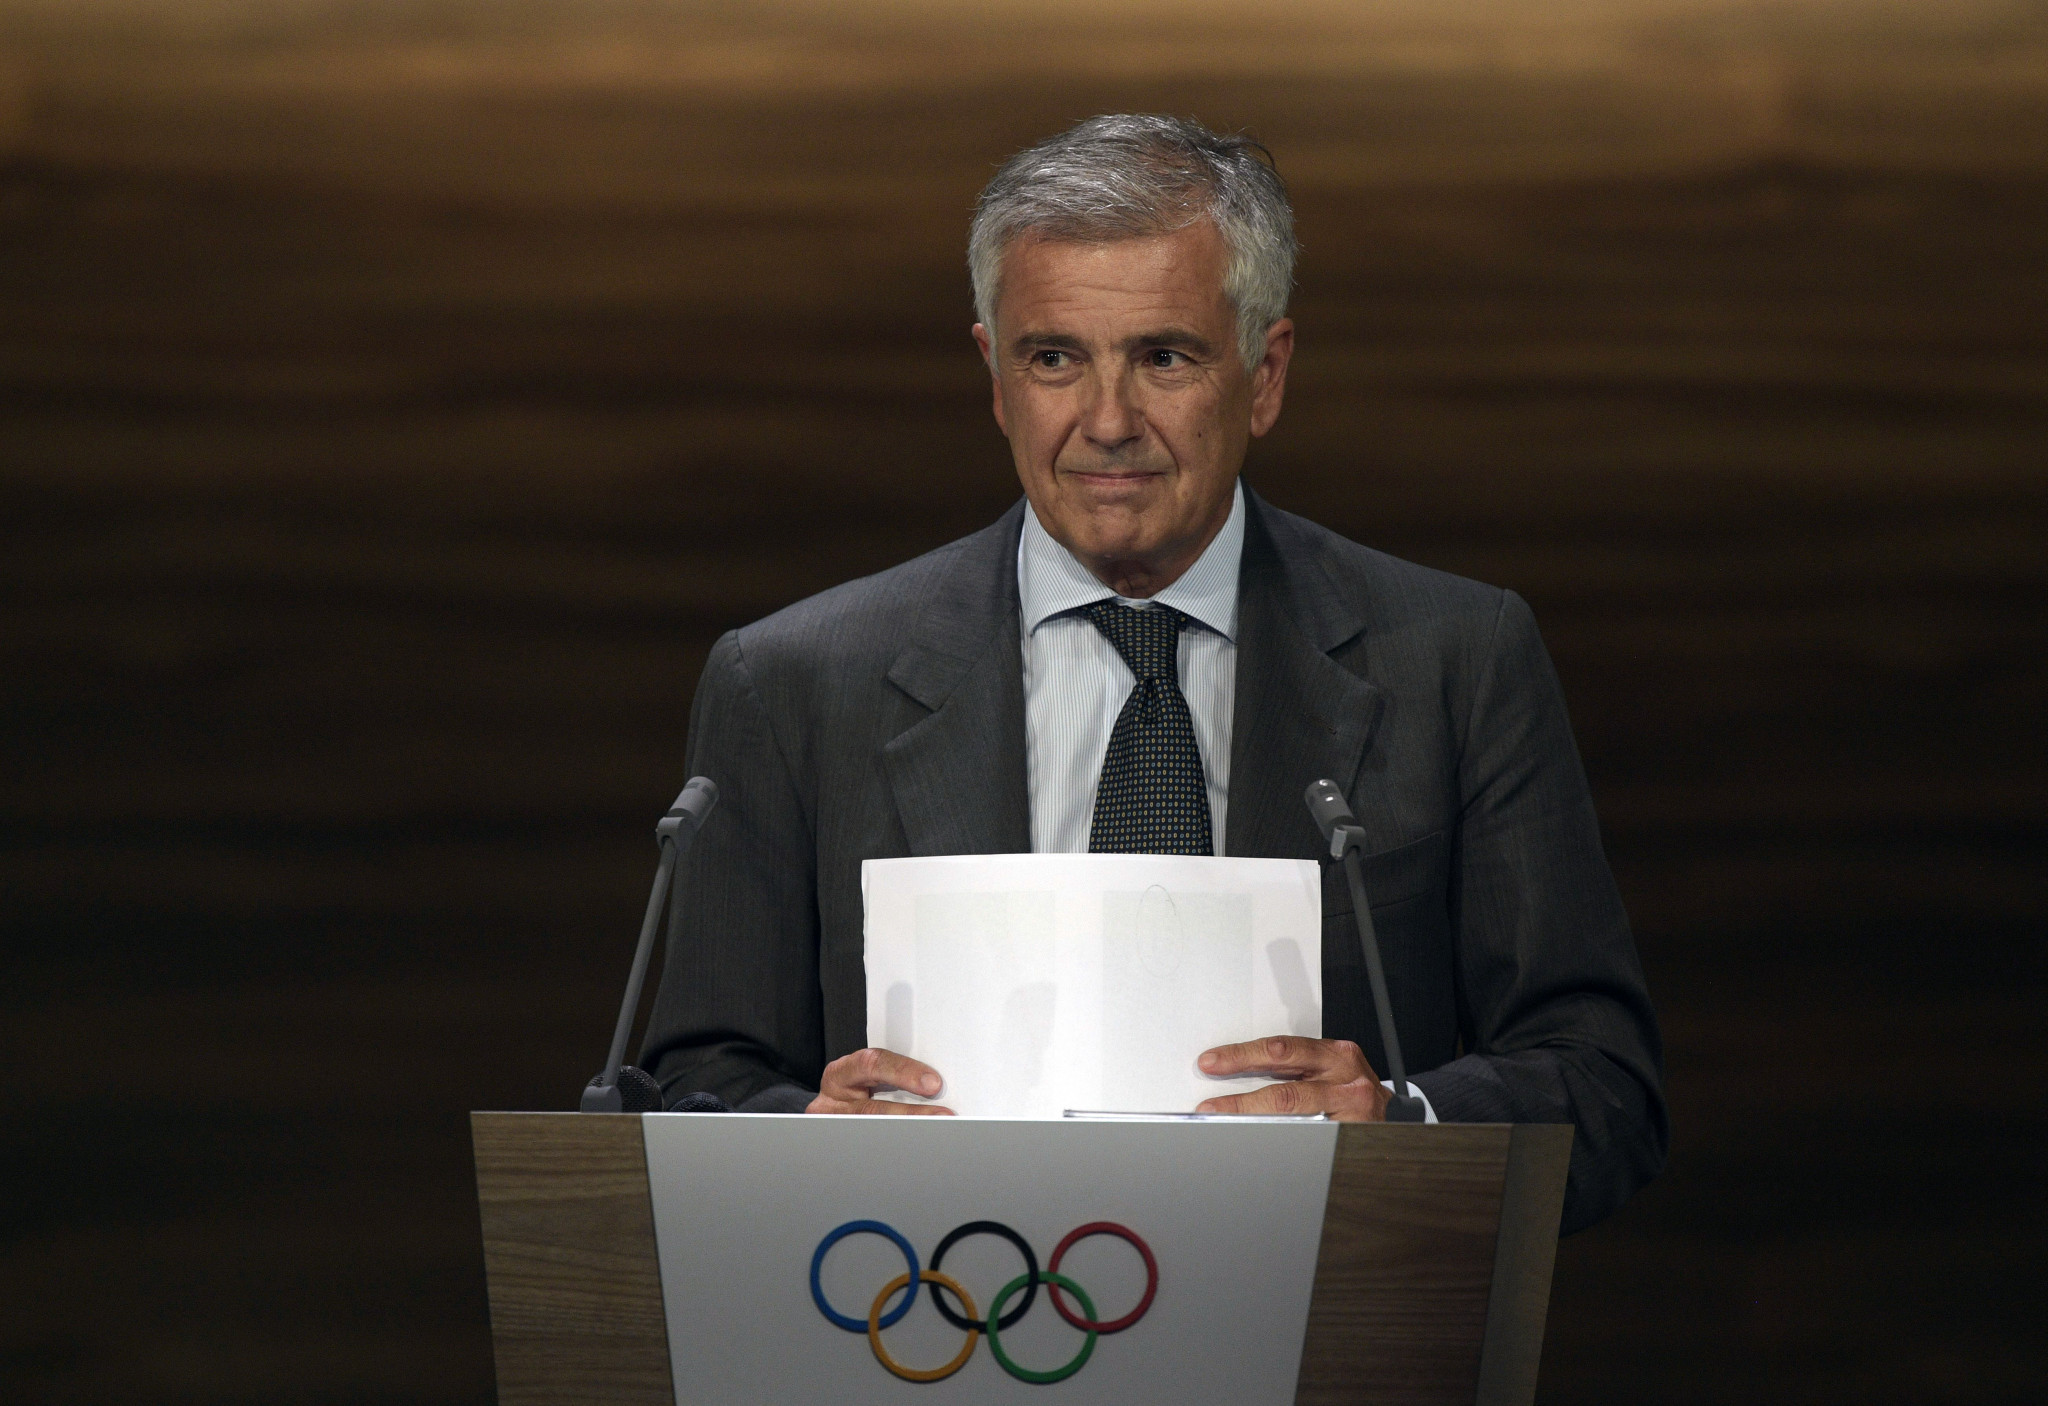 IOC vice-president and the Working Group on the 2026 Winter Olympic and Paralympic bids Juan-Antonio Samaranch was full of praise for the three bids at the Session in Buenos Aires today ©Getty Images